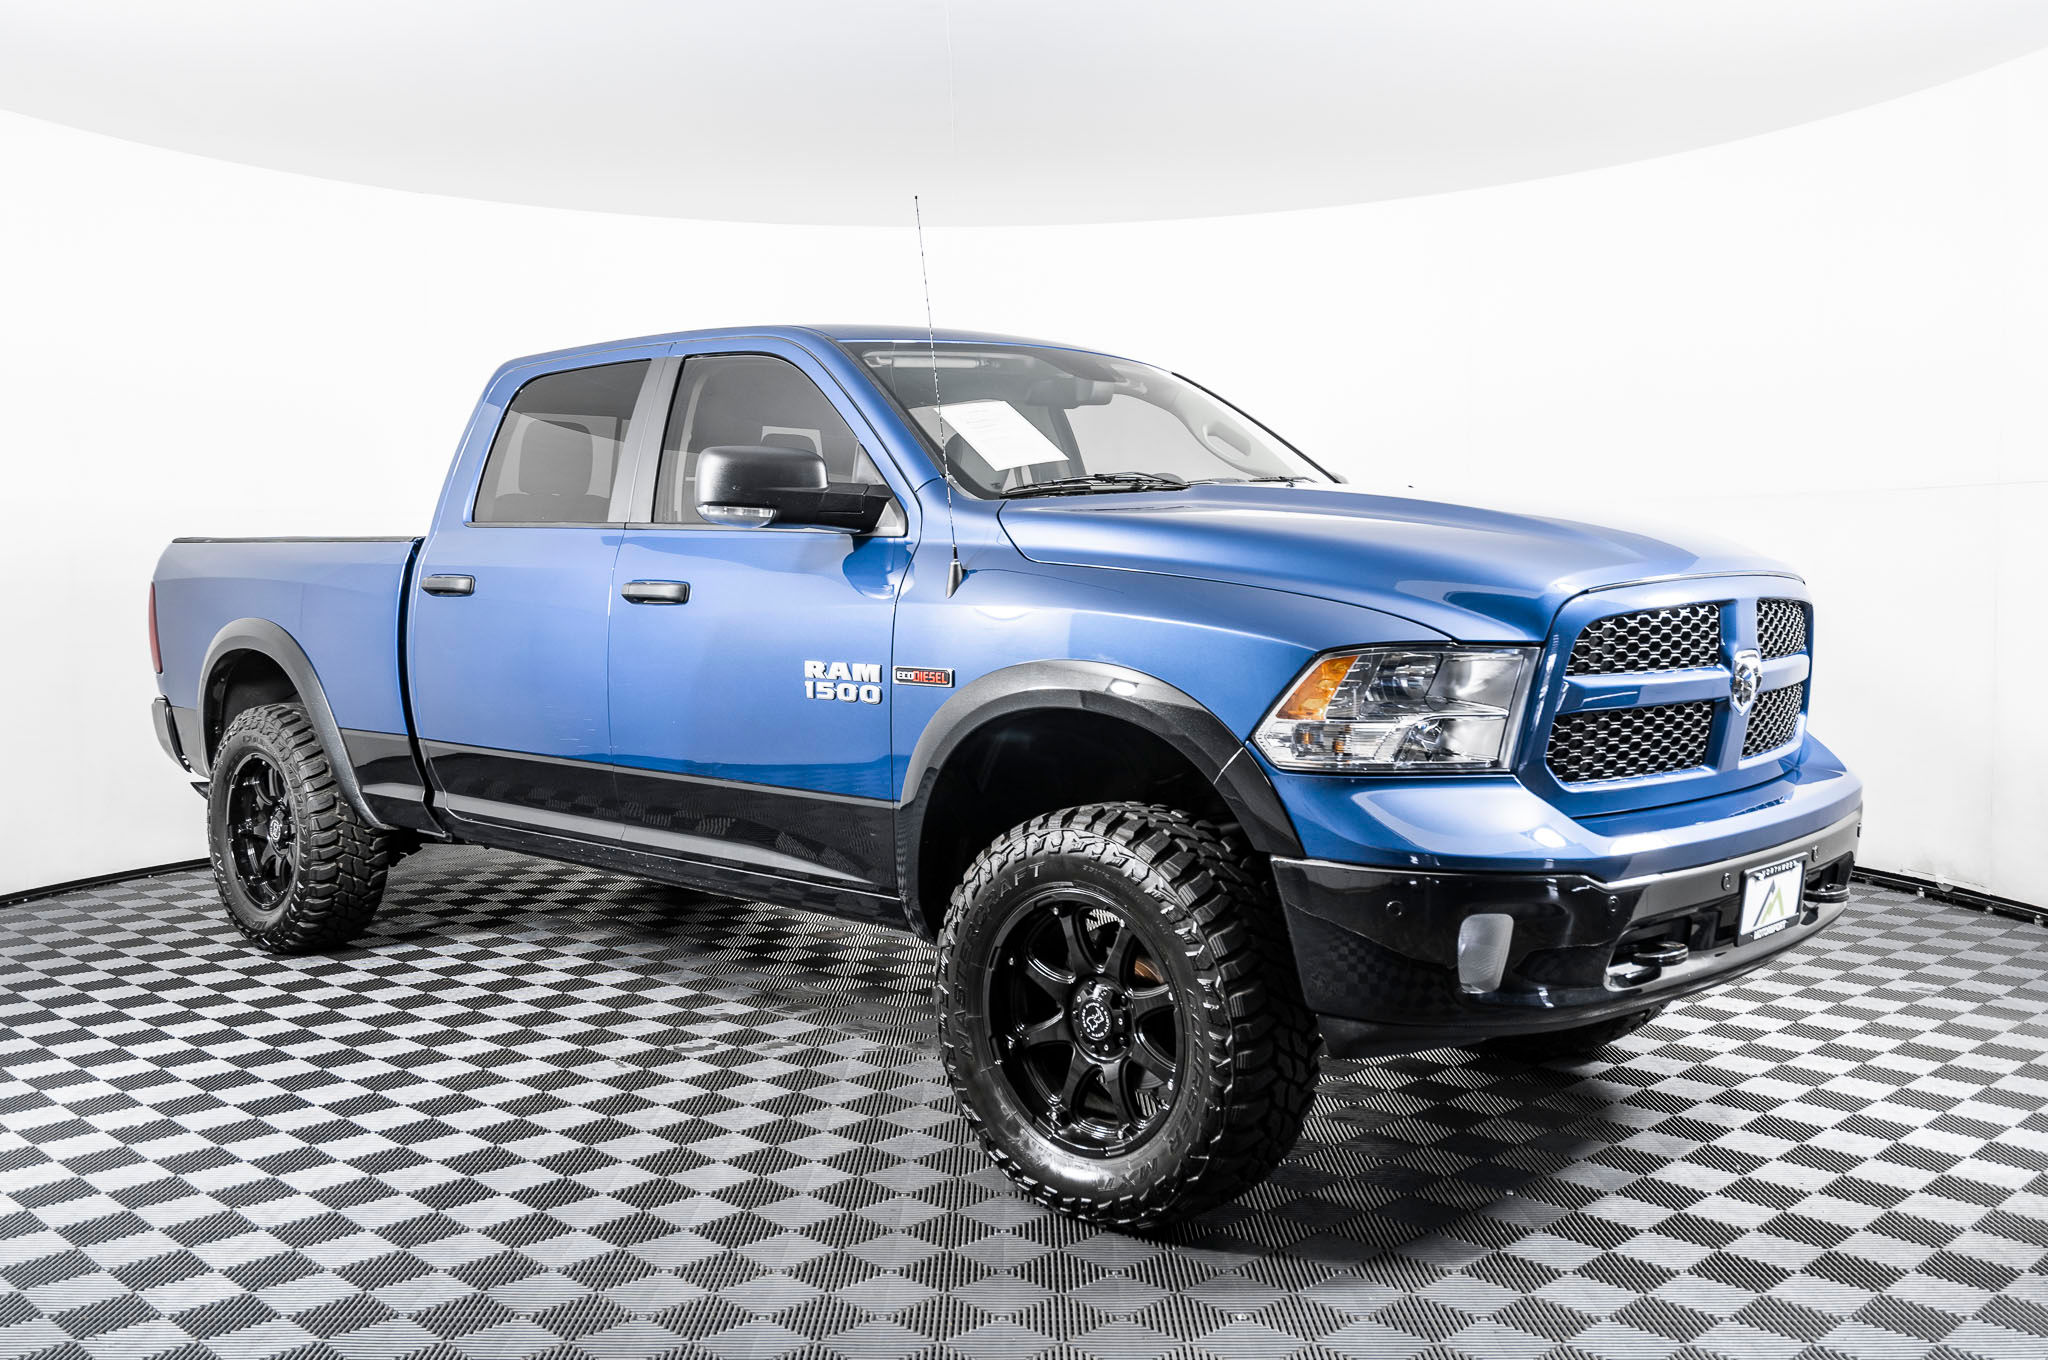 Dodge 2016 Truck >> Used Lifted 2016 Dodge Ram 1500 Outdoorsman 4x4 Diesel Truck For Sale